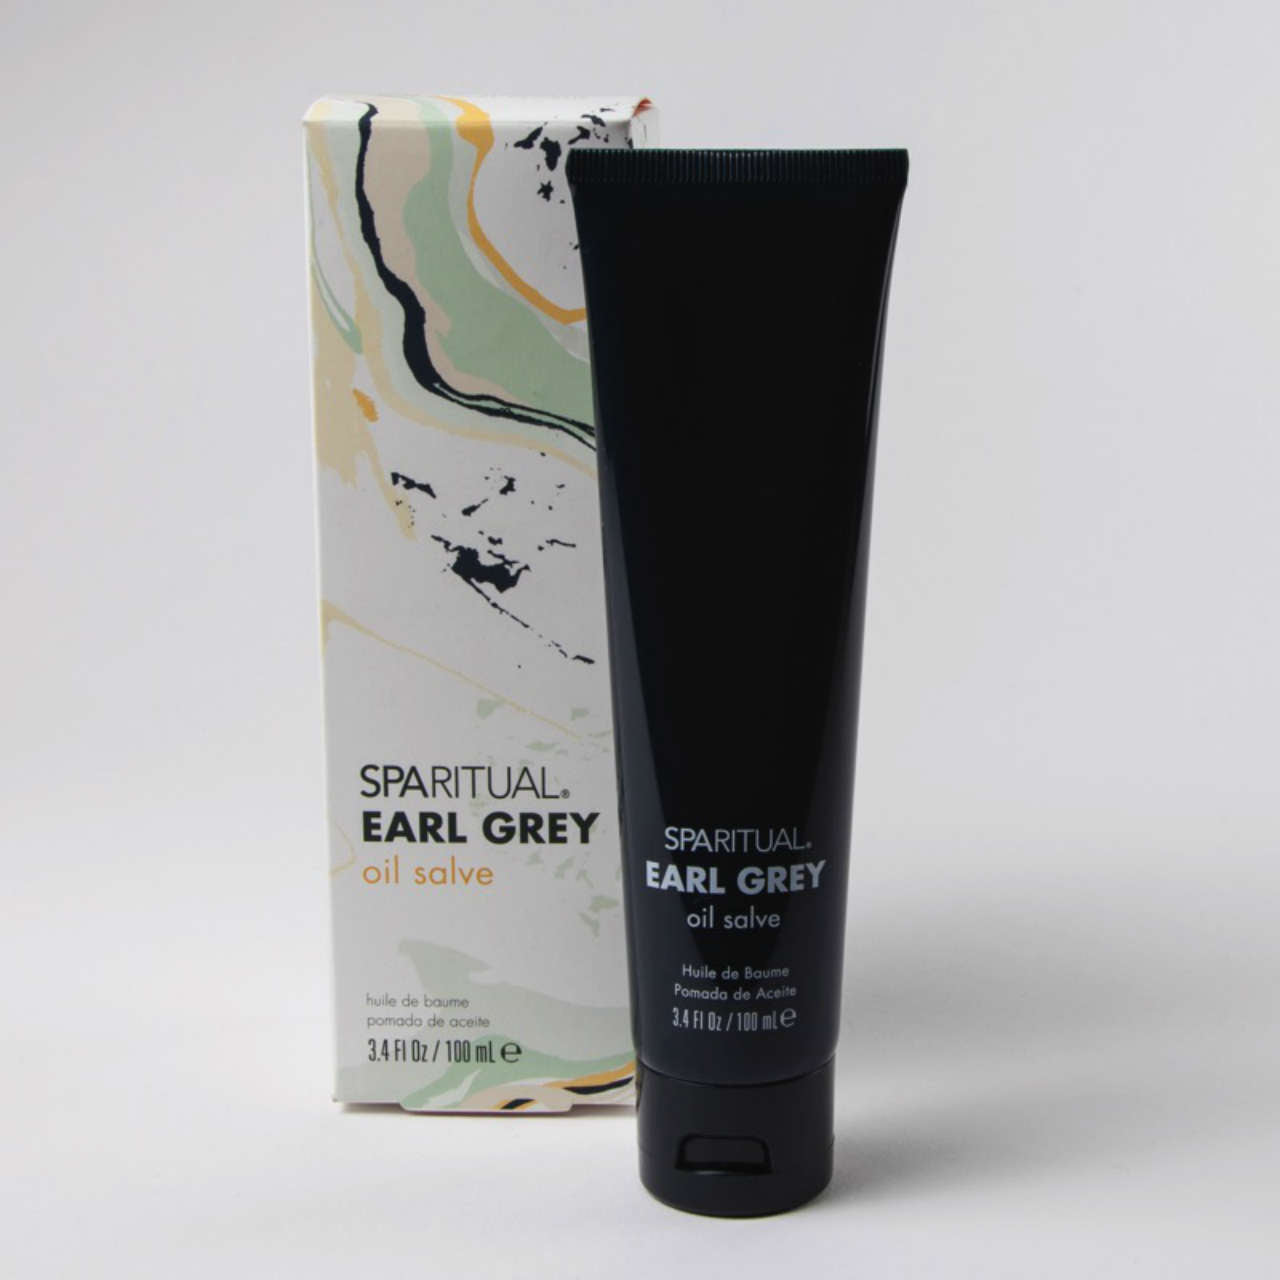 SPARITUAL Earl Grey Vegan Oil Salve